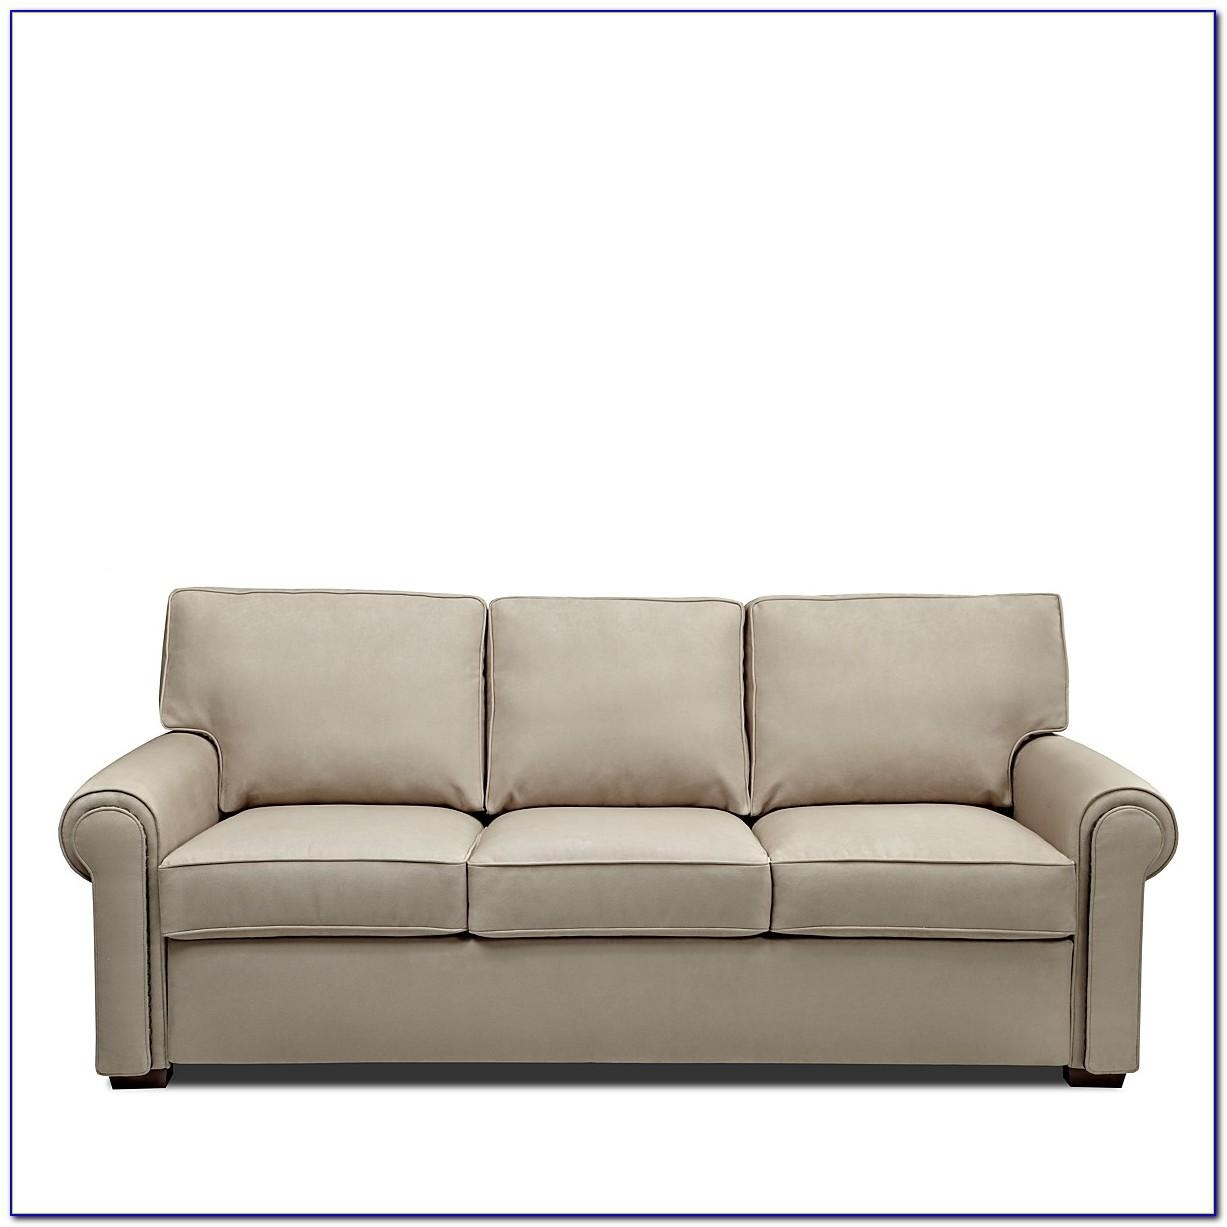 Sofas Center : Craigslist Tampa Bay Leather Sleeper Sofasleeper Regarding Craigslist Sleeper Sofas (Image 12 of 20)